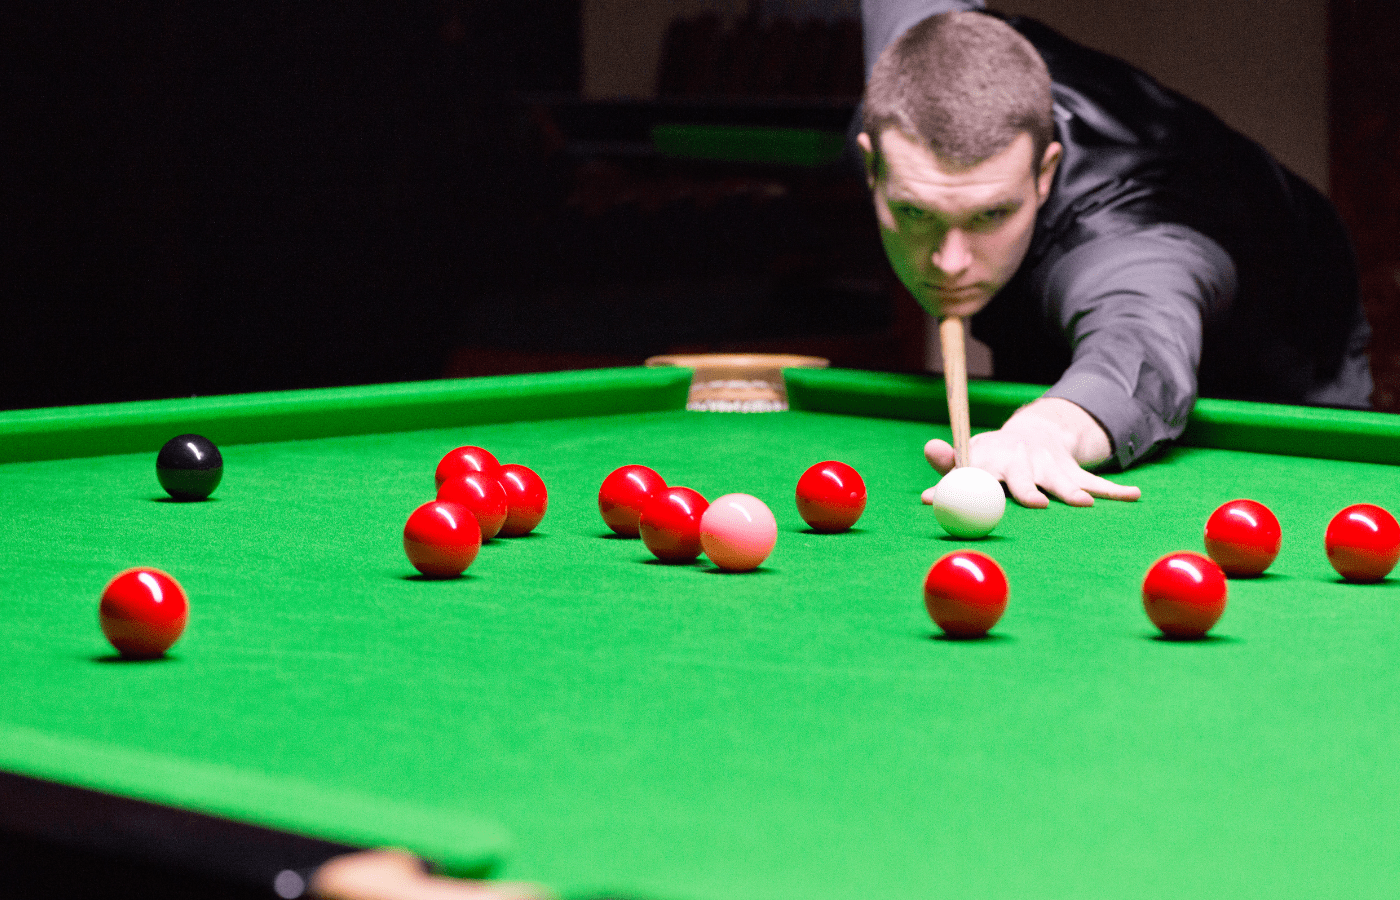 why do snooker players apologize for flukes